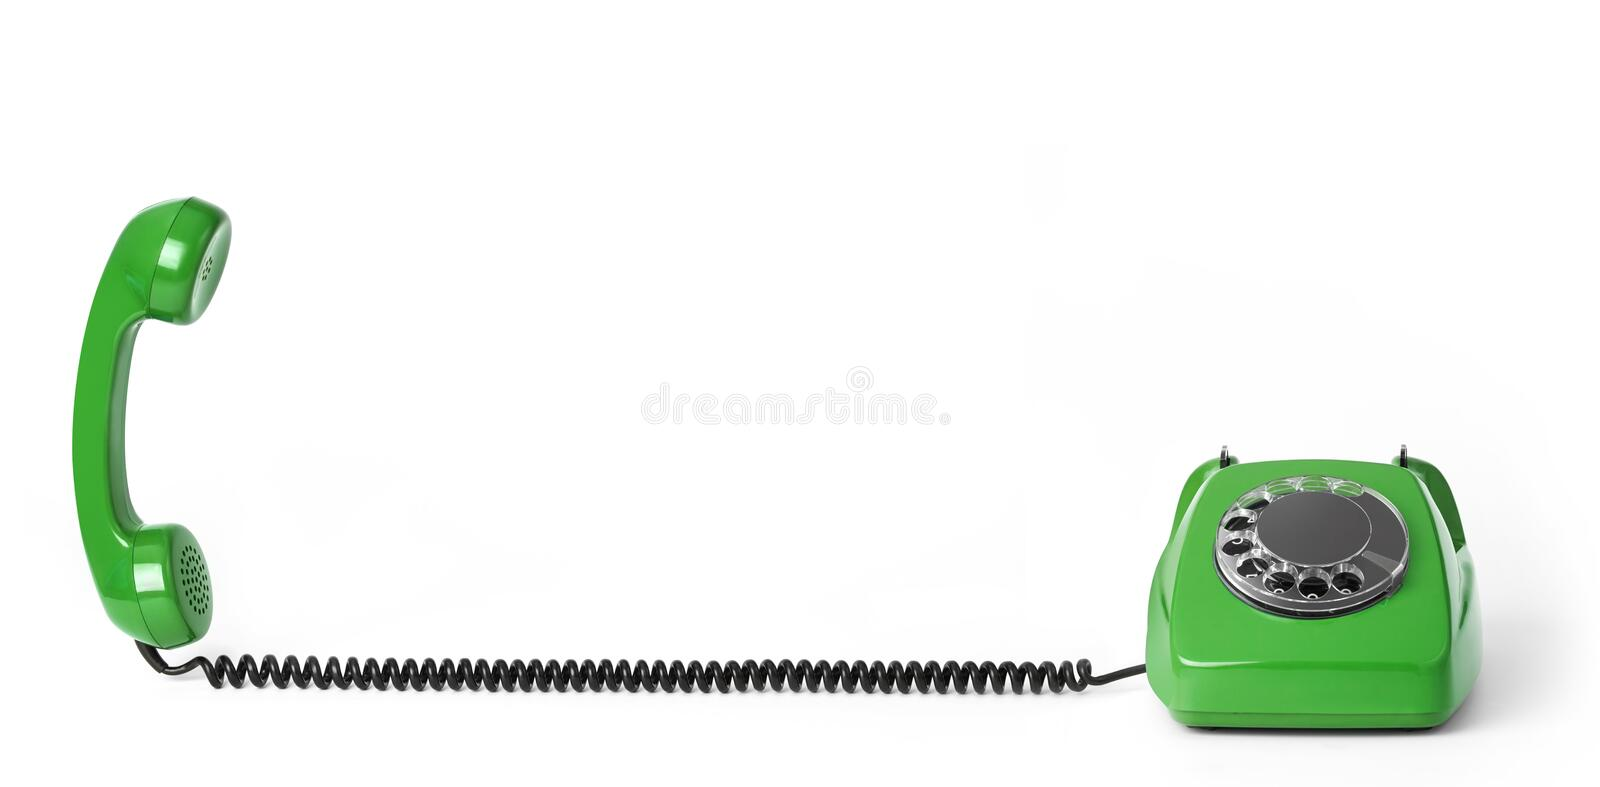 Vintage telephone with cord. Vintage telephone isolated on white royalty free illustration